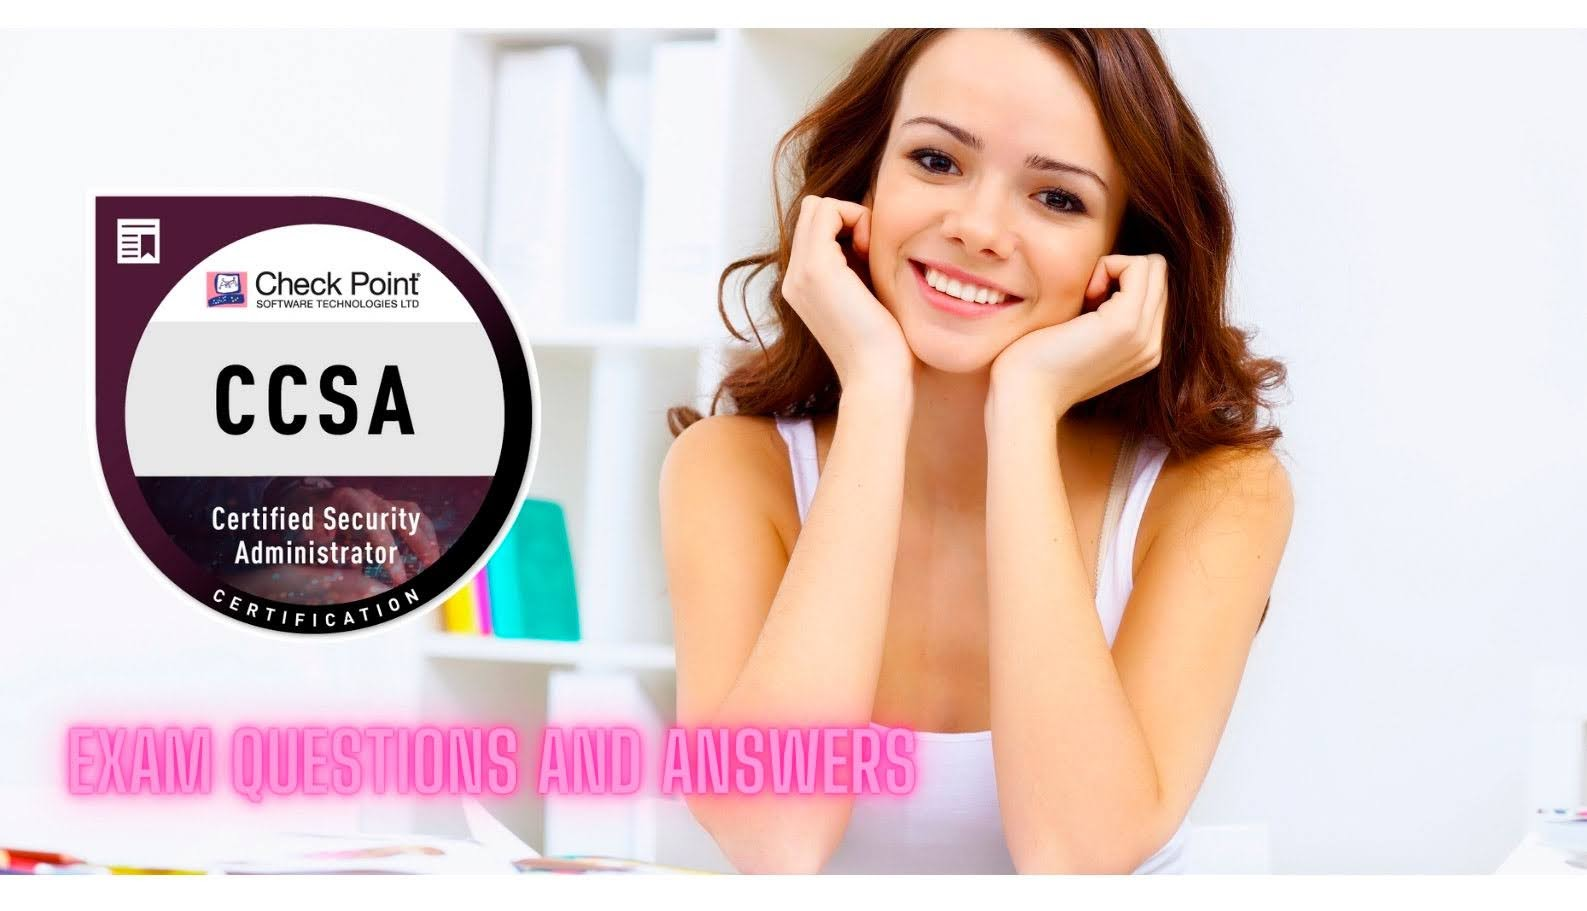 Check Point Certified Security Administrator (CCSA) 156-215.80 Exam Questions and Answers